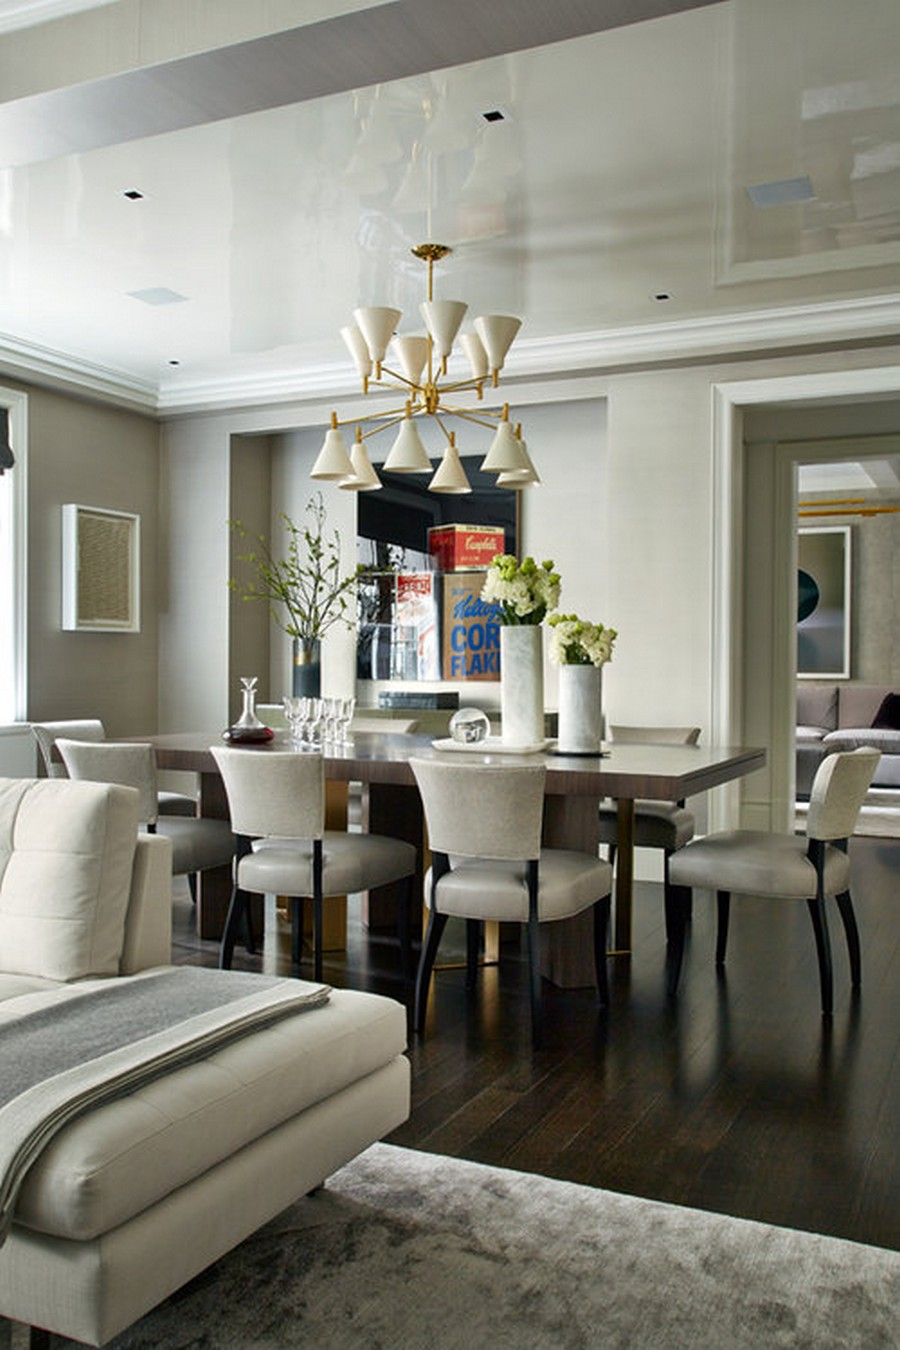 Be Inspired by Amie Weitzman's Fabulous Luxury Design Interiors amie weitzman Be Inspired by Amie Weitzman's Fabulous Luxury Design Interiors Be Inspired by Amie Weitzmans Fabulous Luxury Design Interiors 3